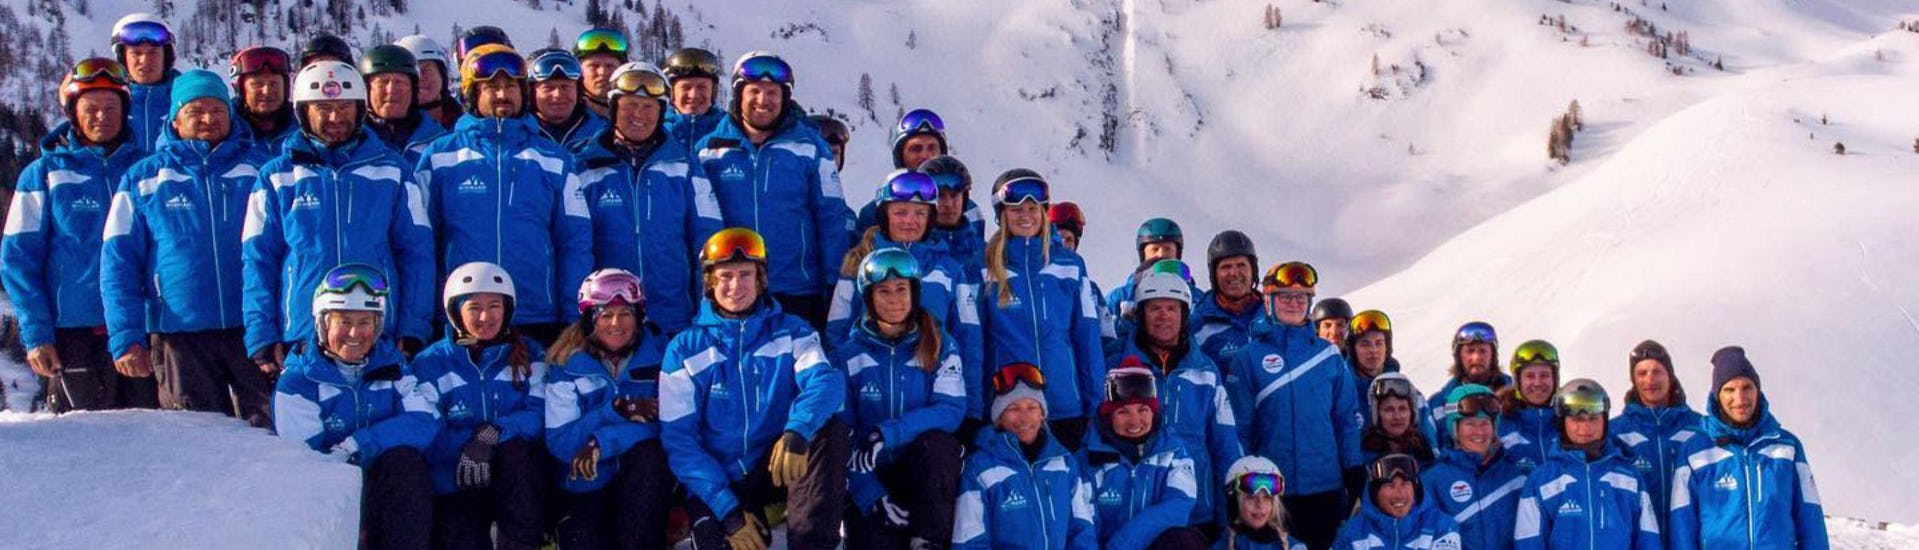 The ski instructors from the ski school Skischule Fieberbrunn Widmann Mountain Sports are collectively posing for a group photo in the Tyrolean ski resort of Fieberbrunn.